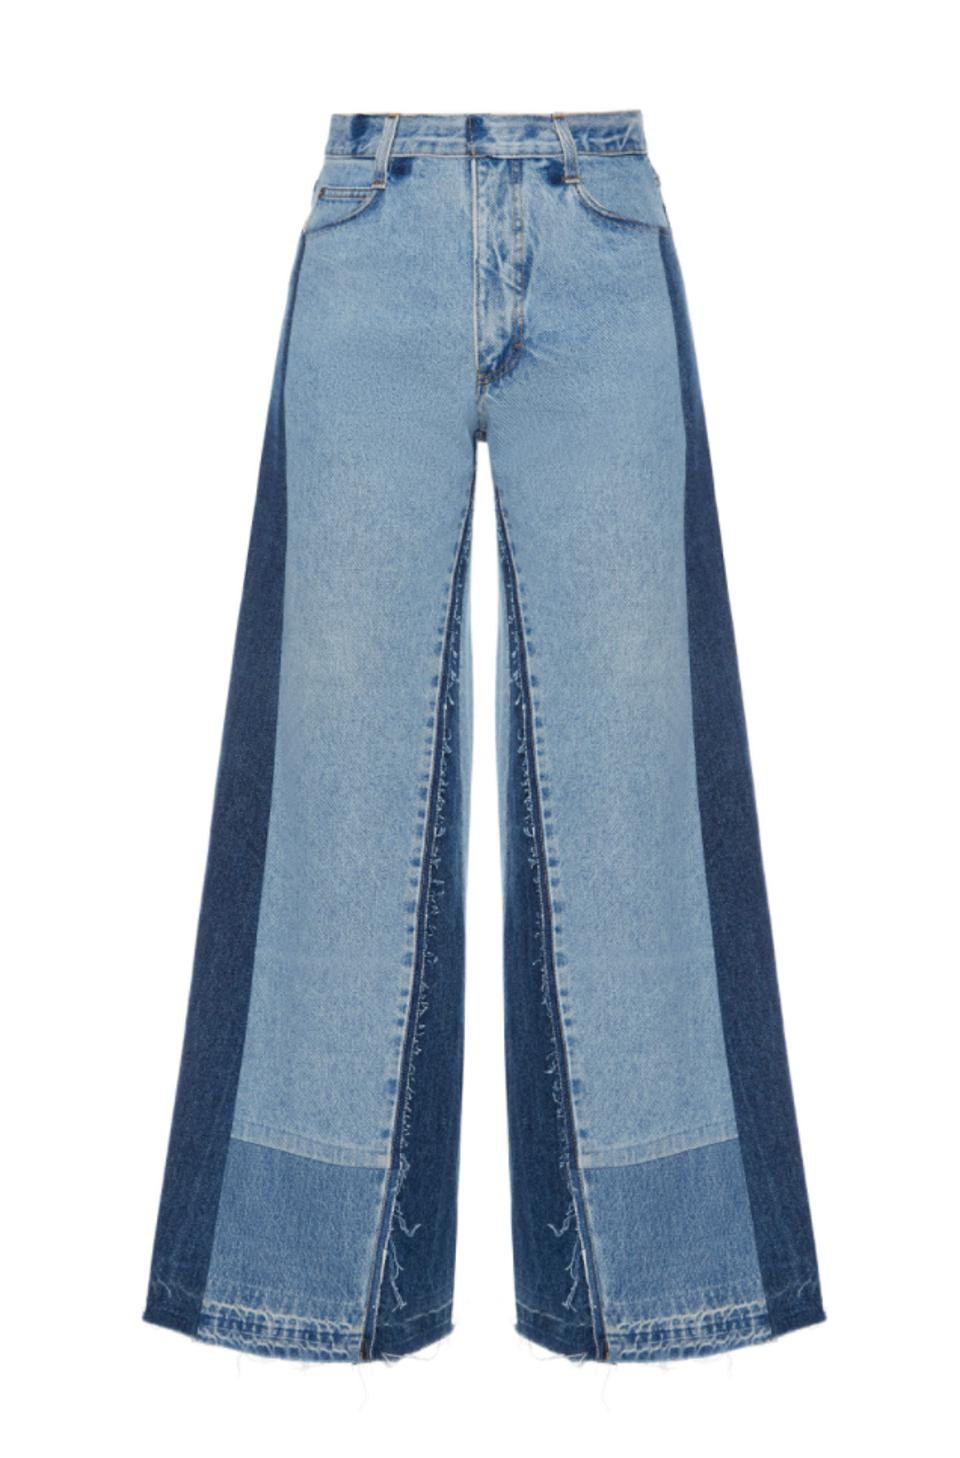 Sustainably crafted patchwork wide-leg denims by KSENAI SCHNAIDER